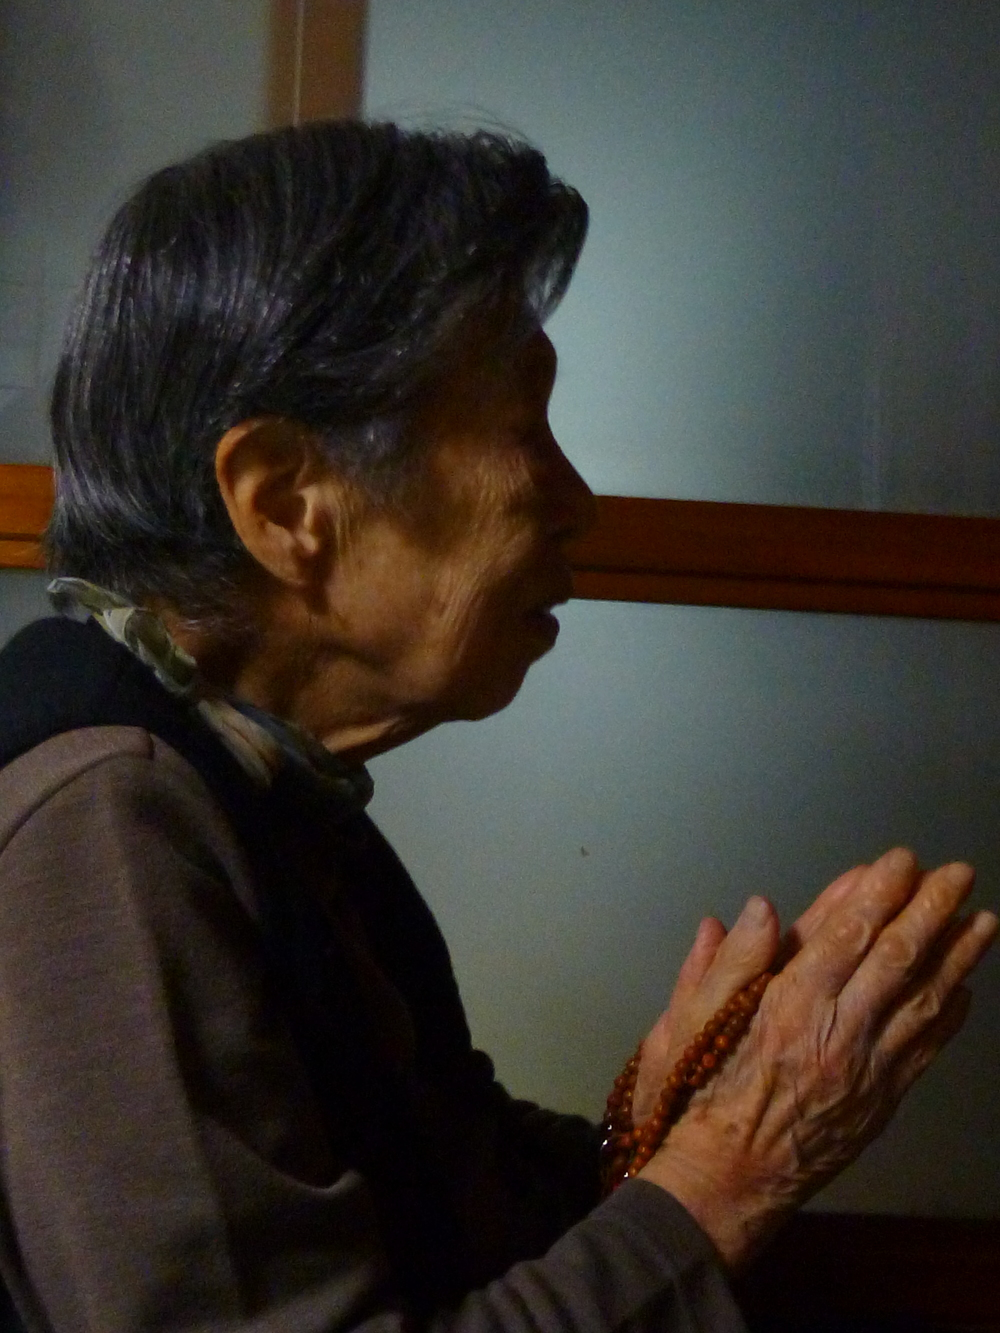 A woman prays at a home altar for her ancestors. At 90, she still makes offerings daily. (photo by Jason Danely)